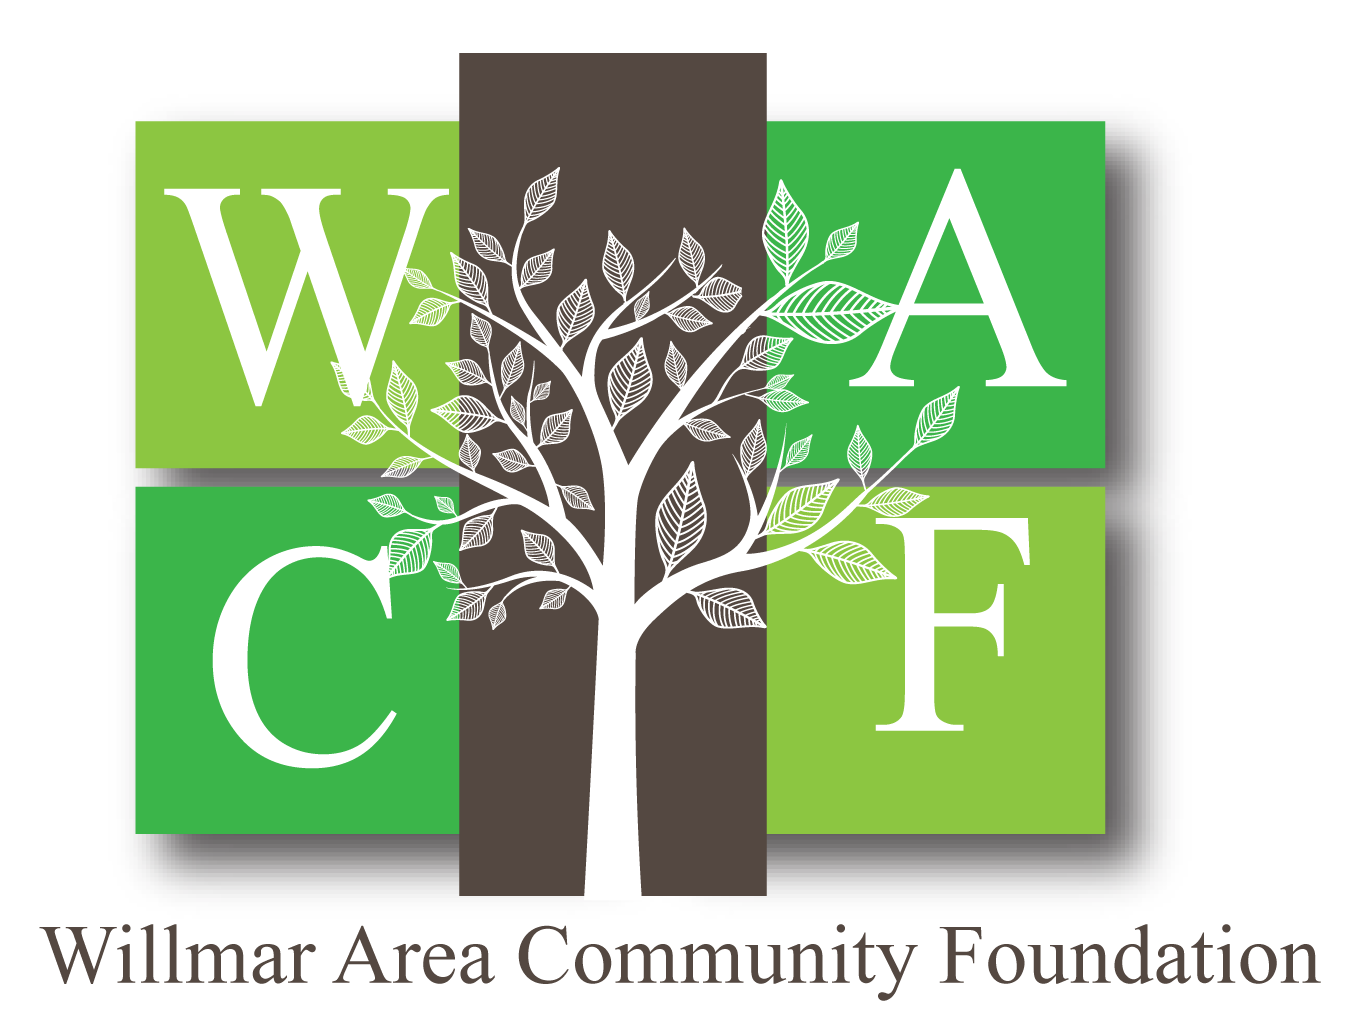 Willmar Area Community Foundation